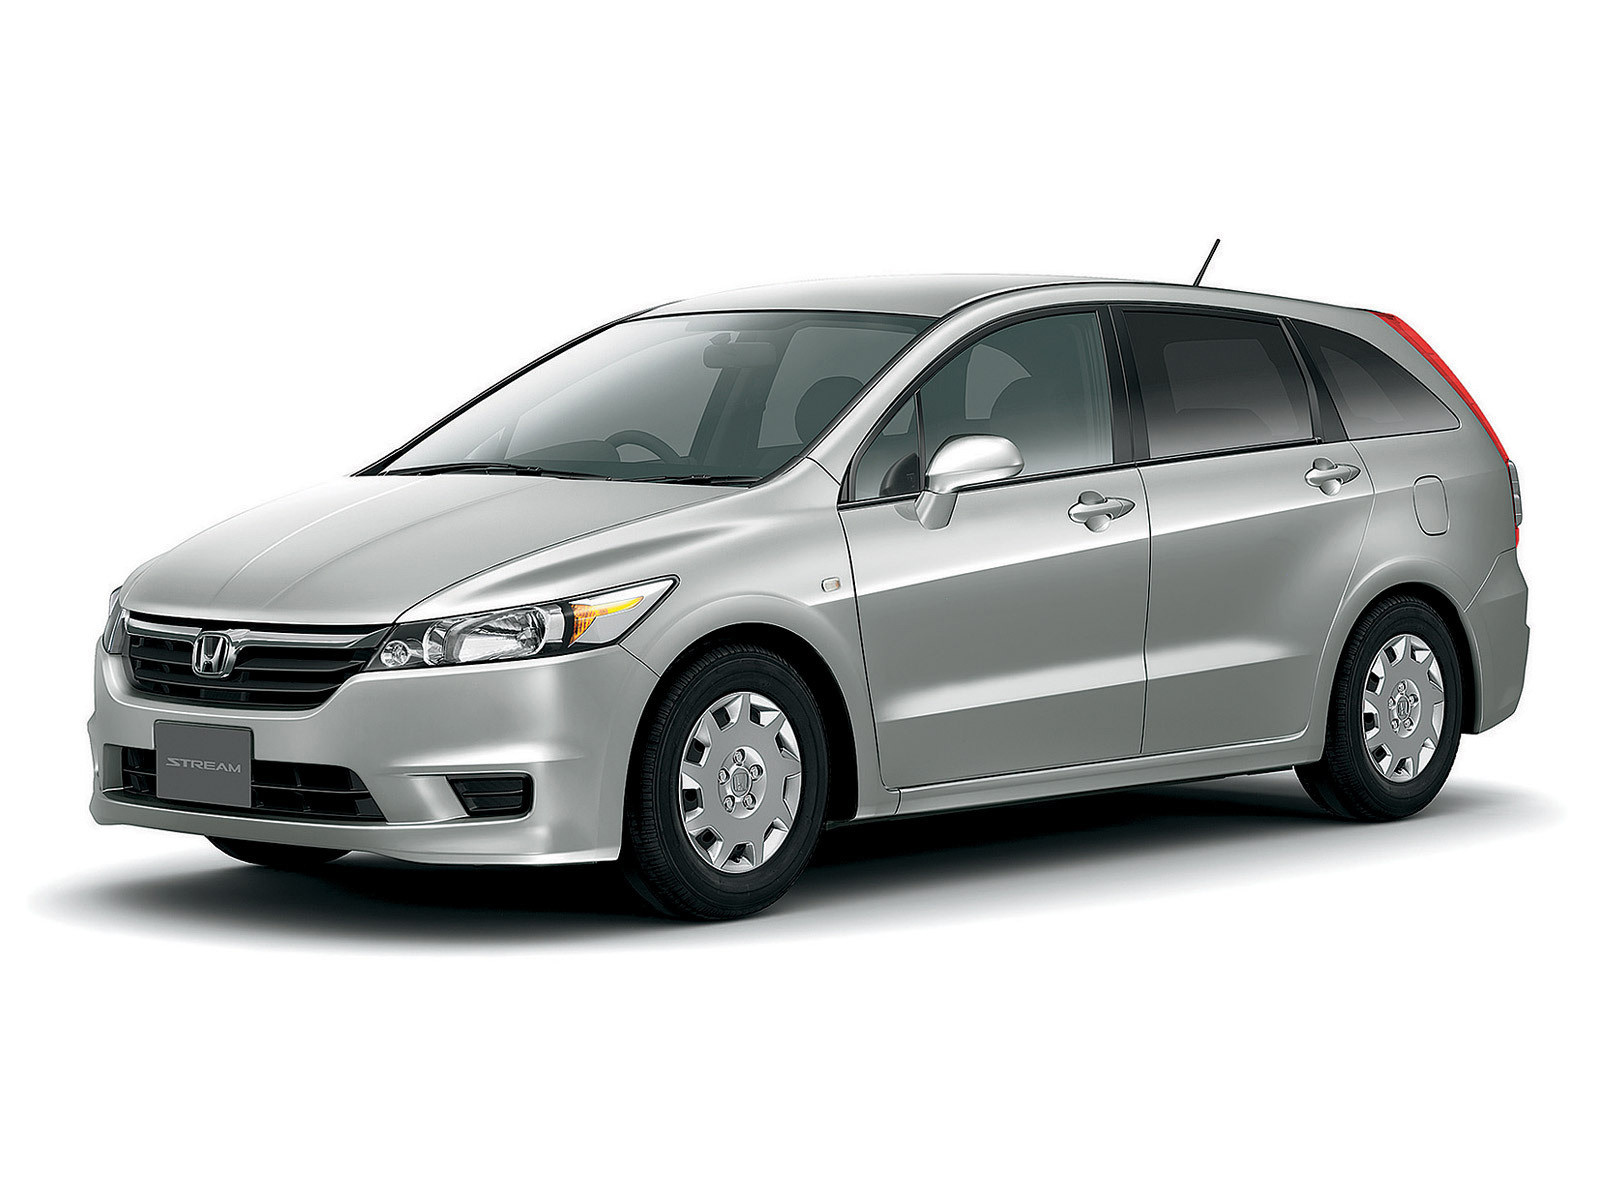 honda stream 2004 wallpaper